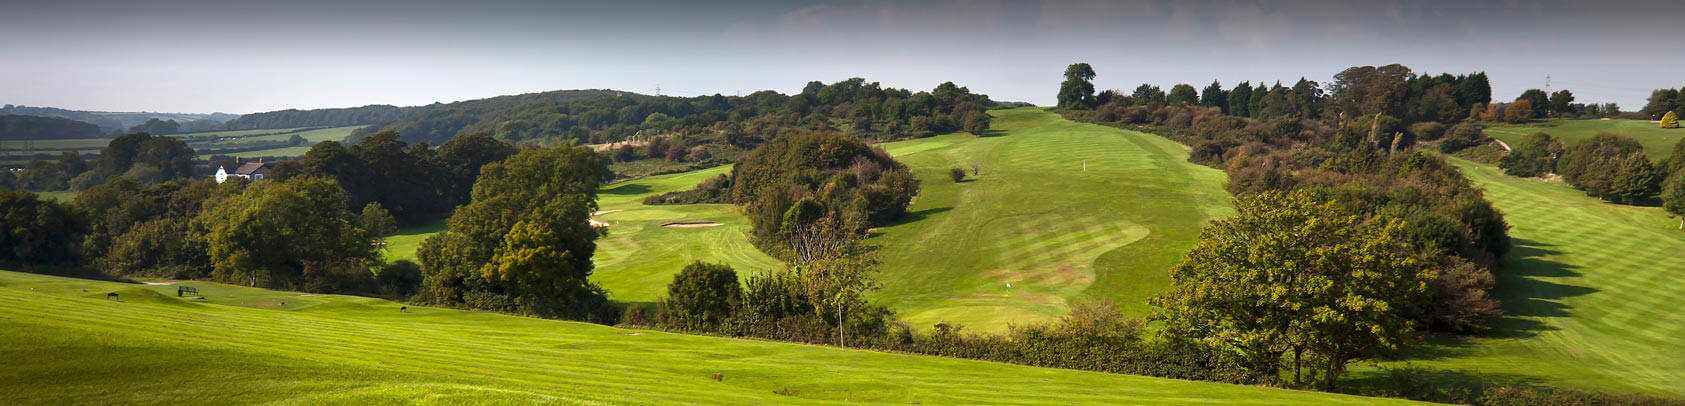 Golf Course in Wales near Cardiff